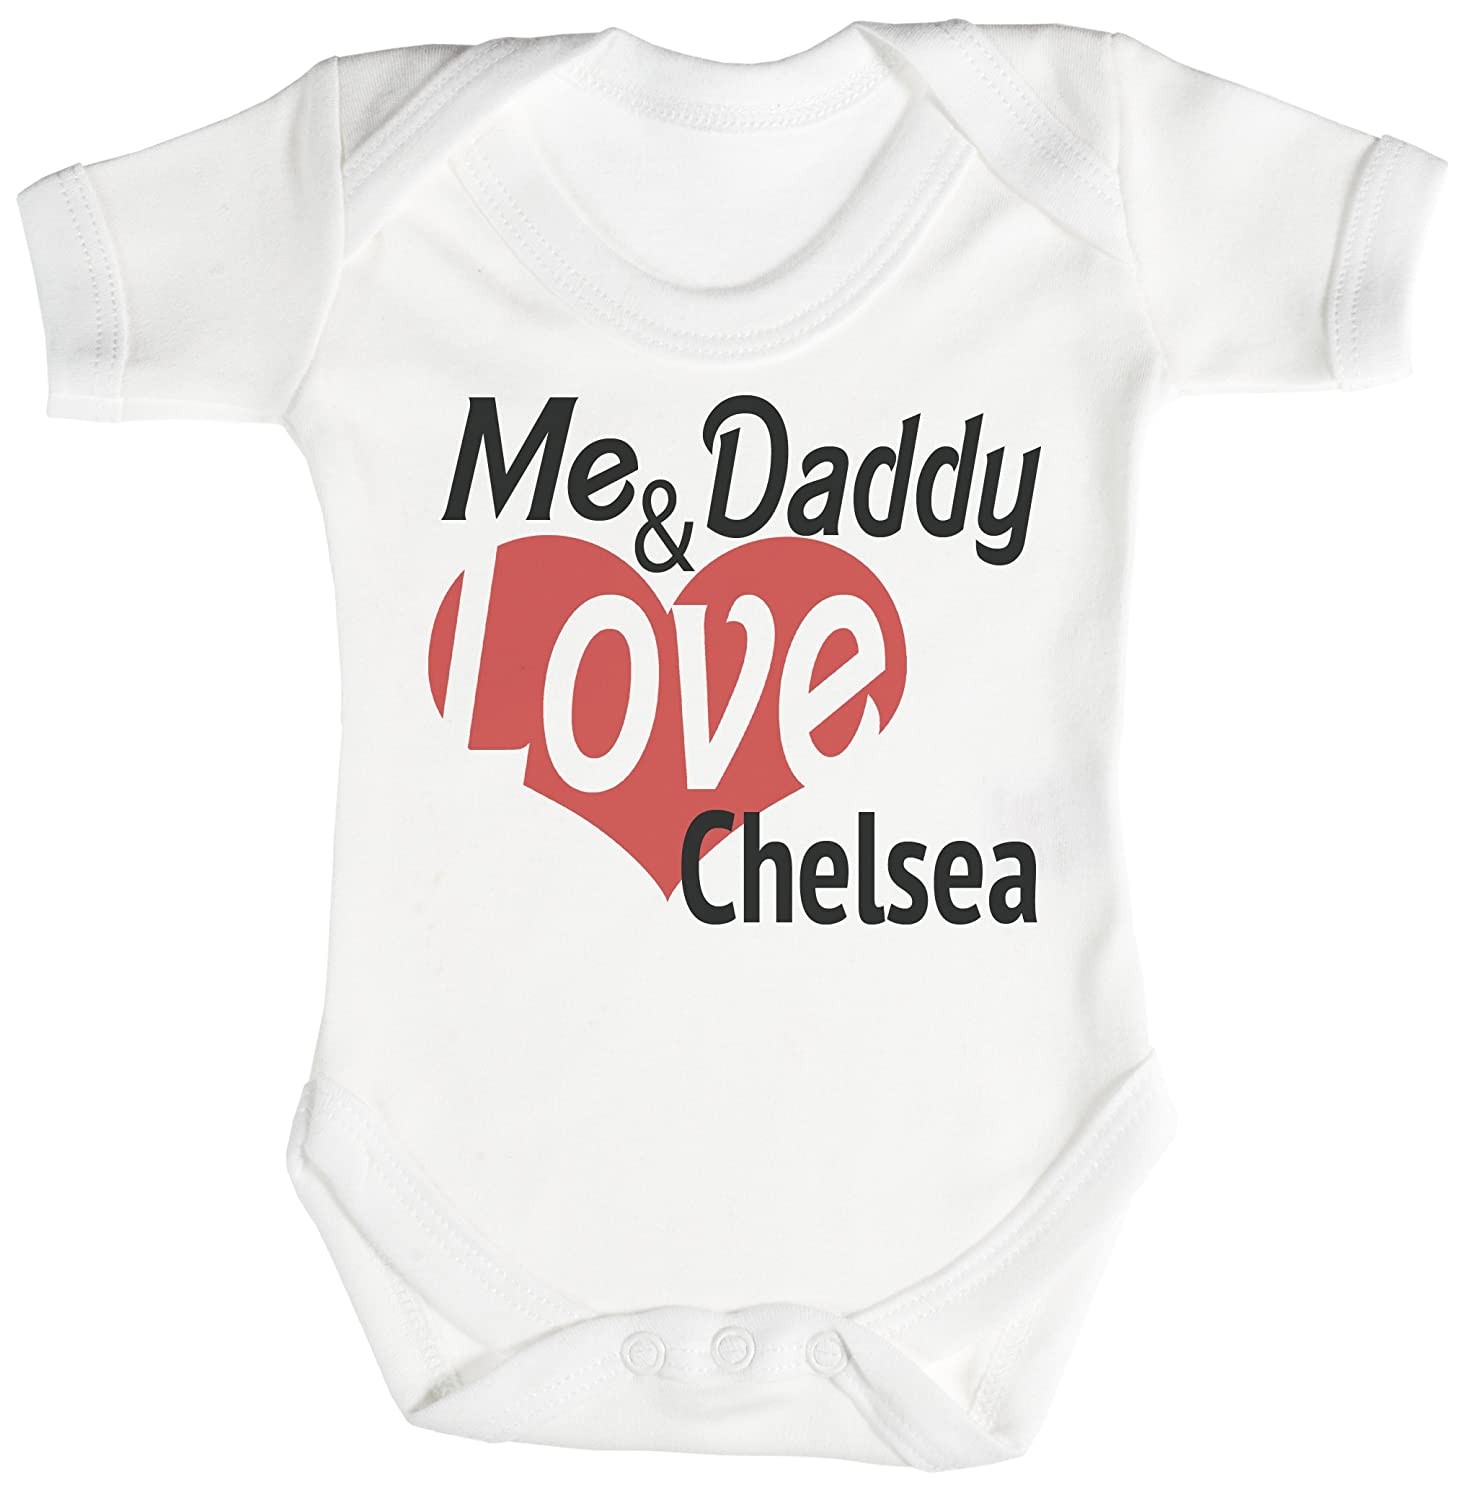 Zarlivia Clothing Me & Daddy Love Chelsea Baby Bodysuit/Babygrow 100% Cotton